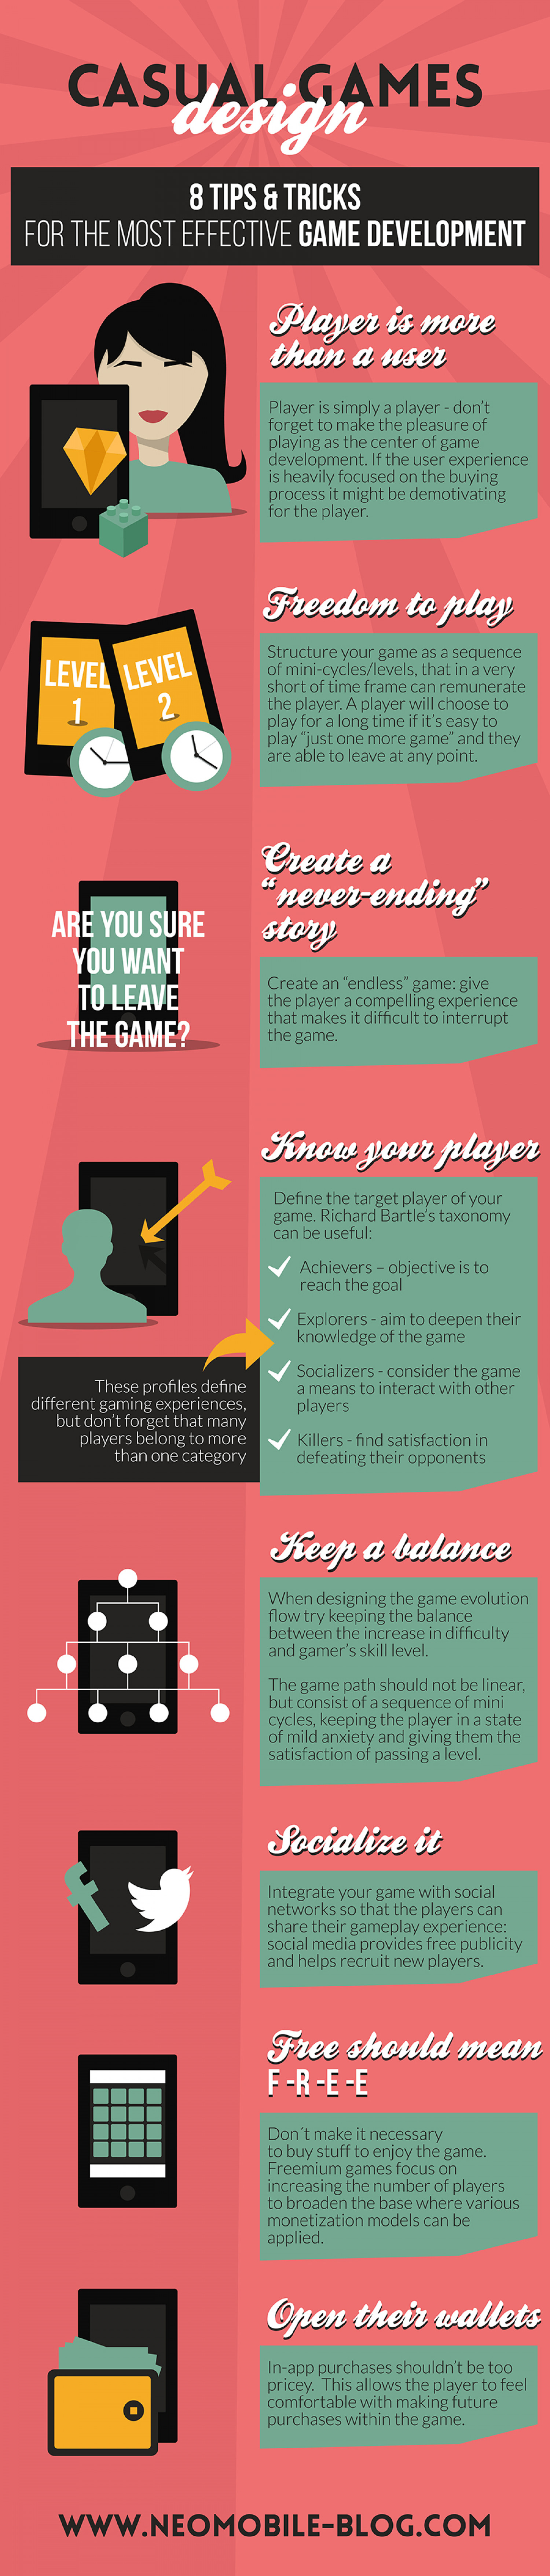 Casual games design: 8 useful tips and tricks that you shouldn't miss Infographic